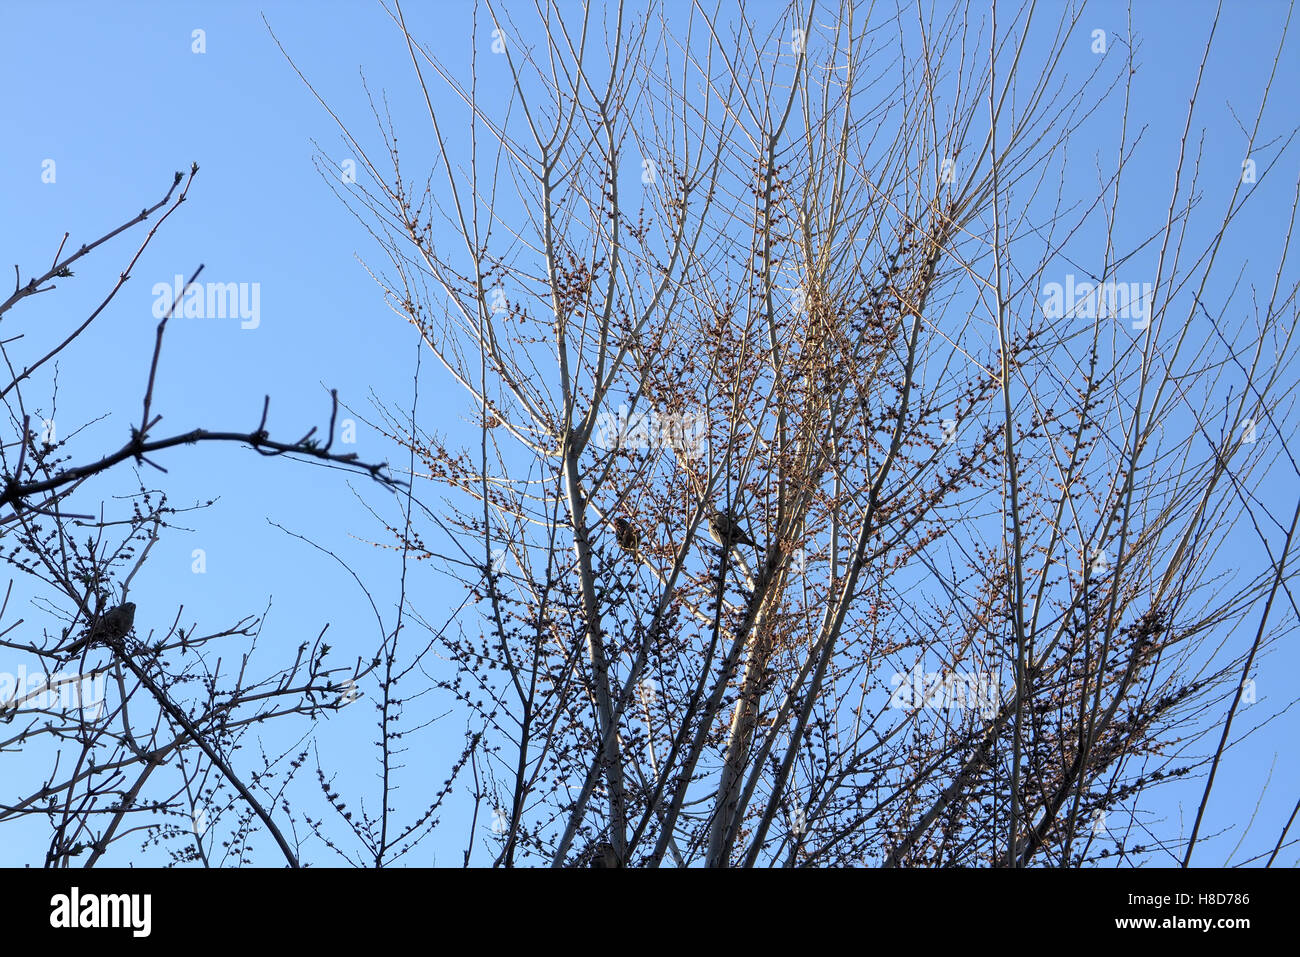 Spring. Sparrows chirp in tree with opened buds. Kyrgyzstan - Stock Image